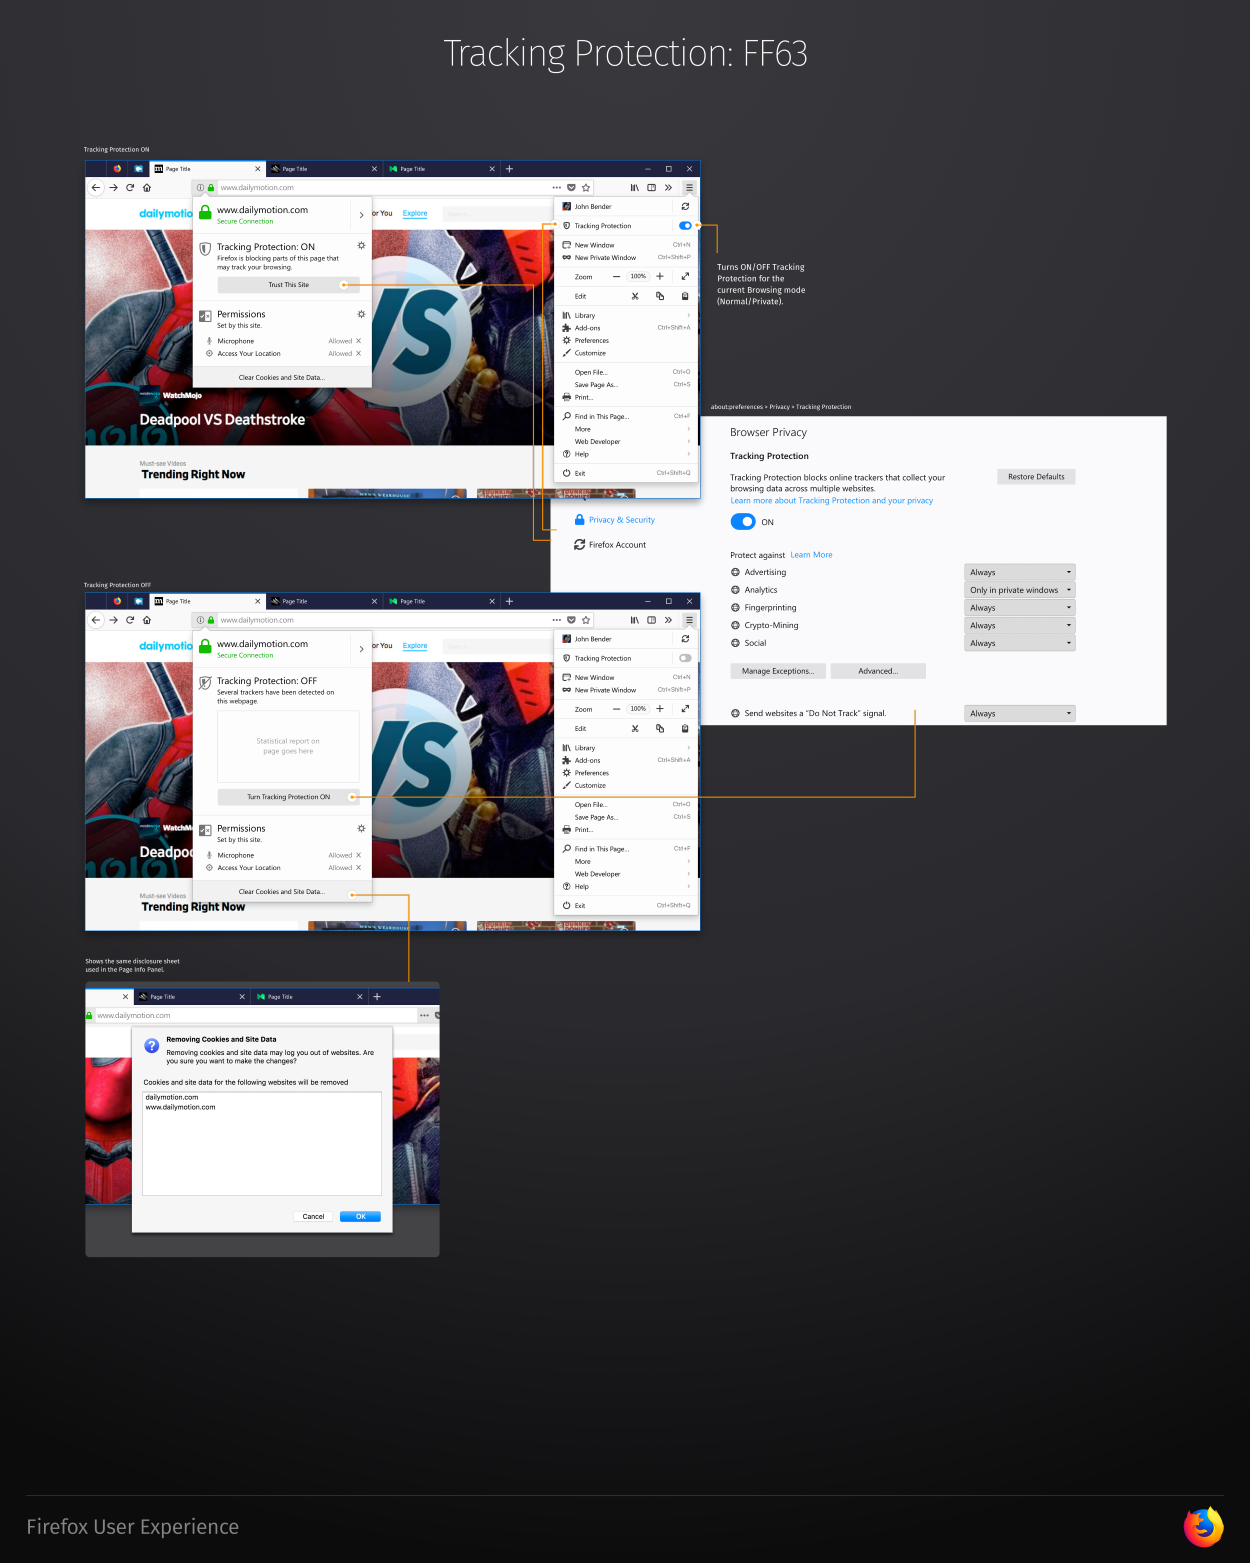 Upcoming Firefox UI changes